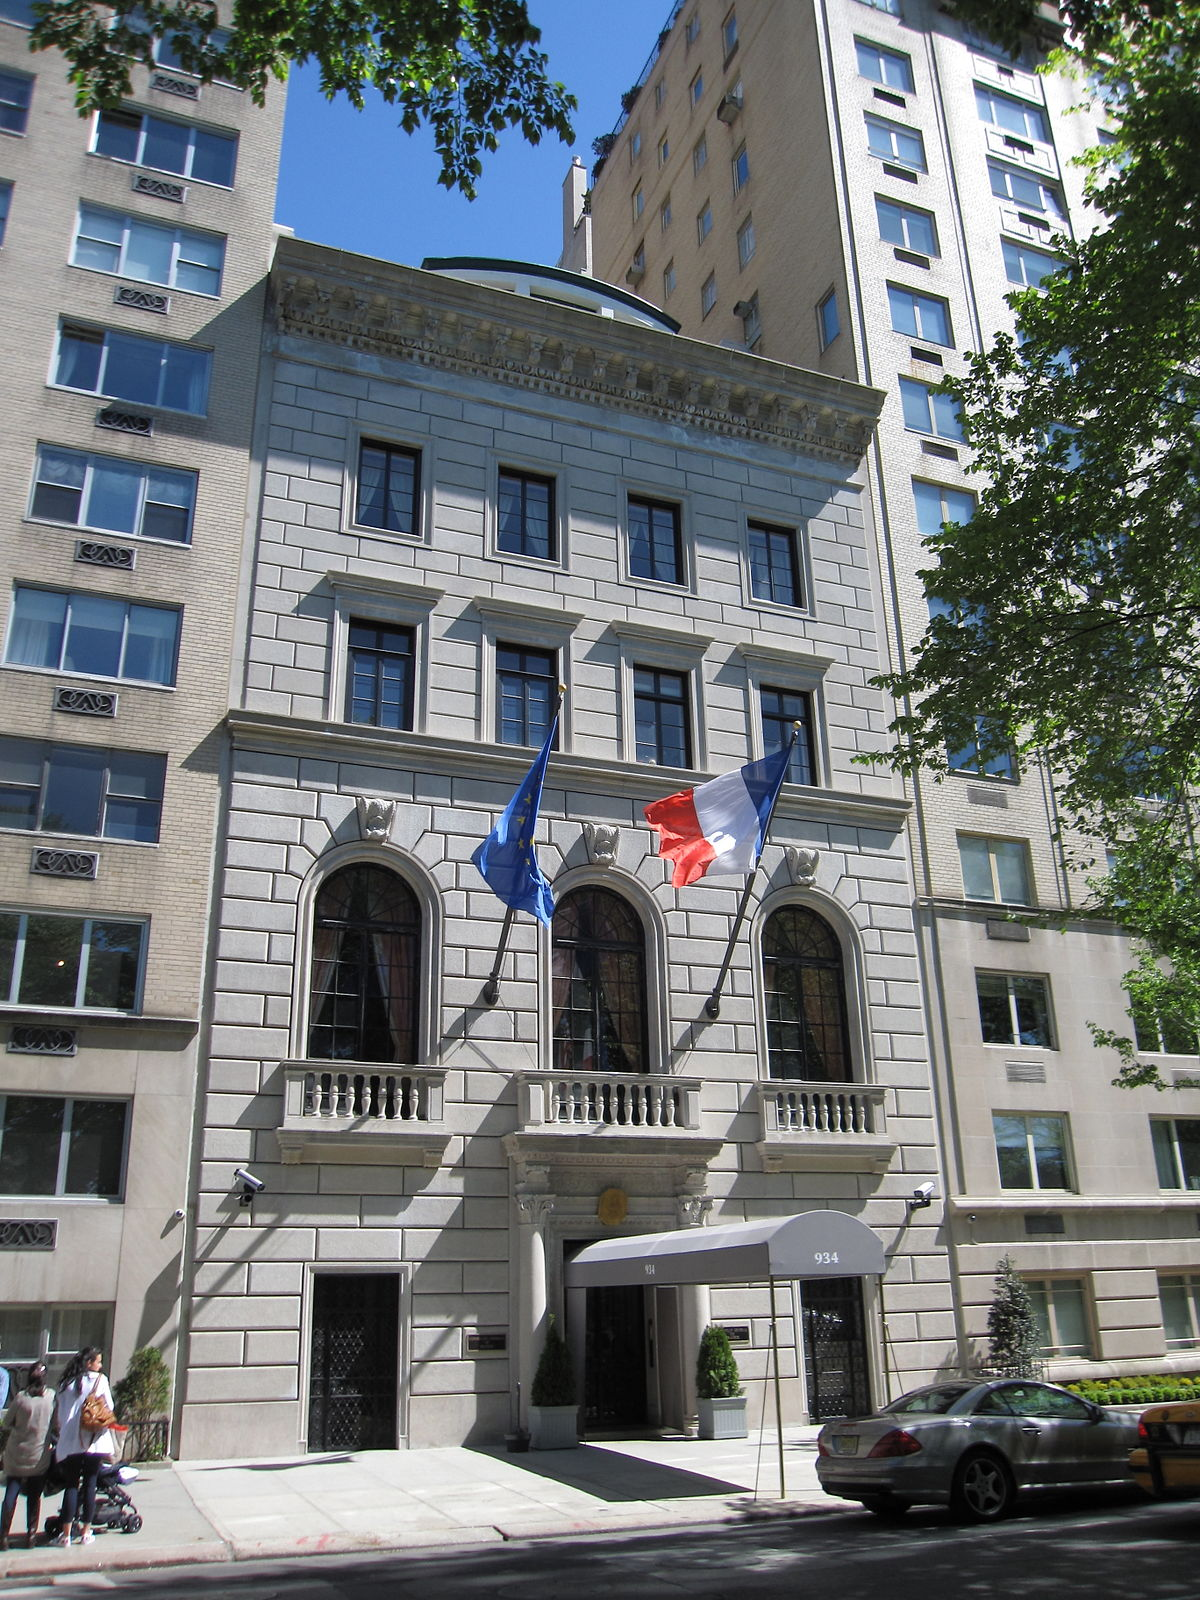 Consulate general of france in new york wikipedia for Hotels unis de france